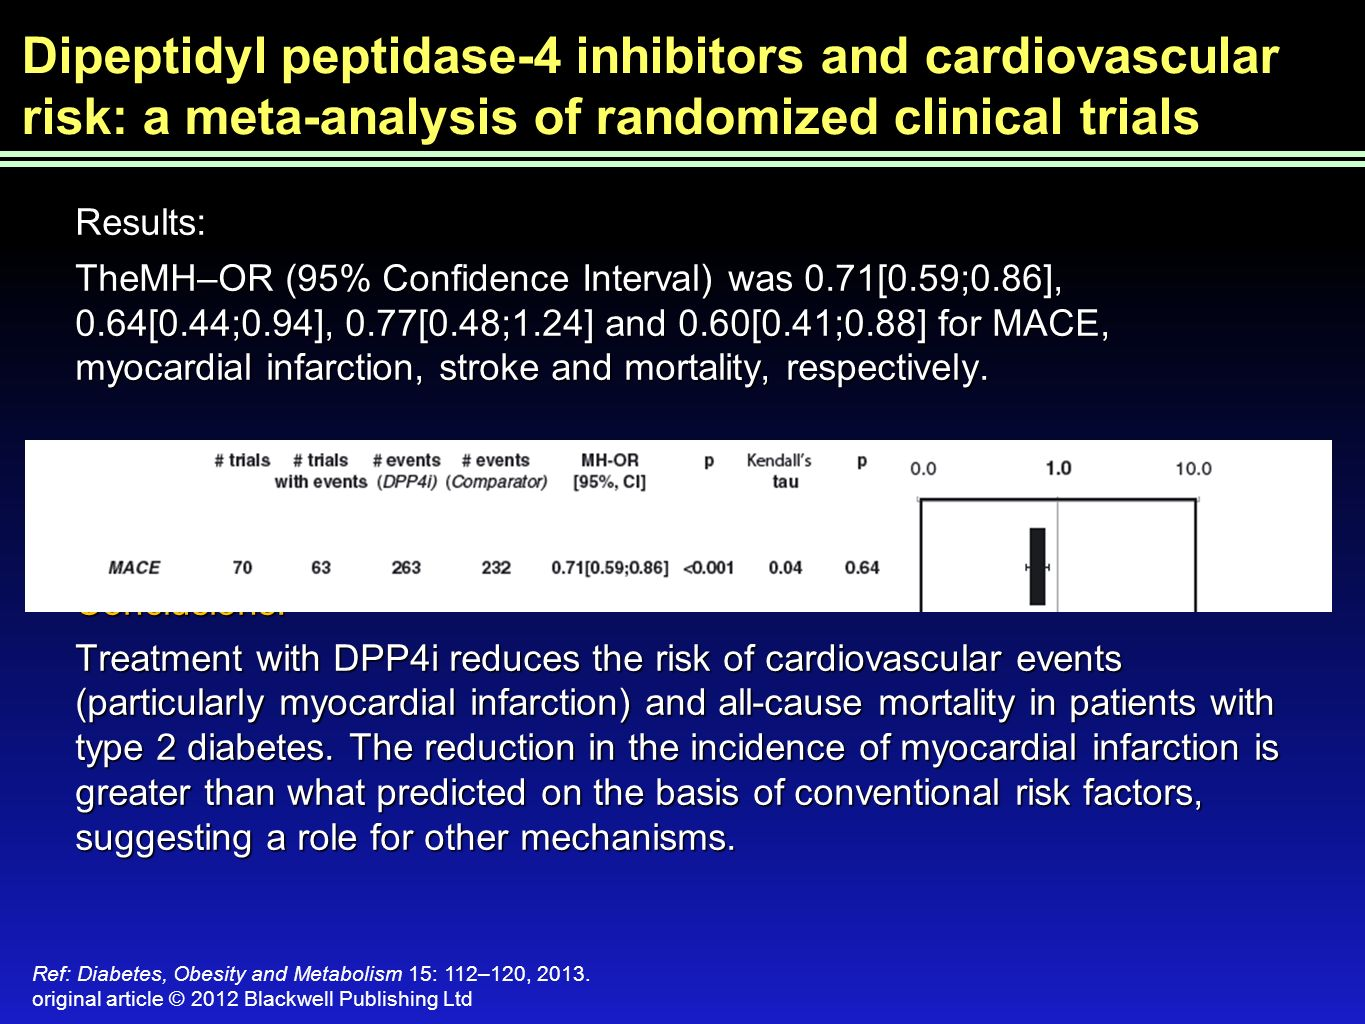 Dipeptidyl peptidase-4 inhibitors and cardiovascular risk: a meta-analysis of randomized clinical trials